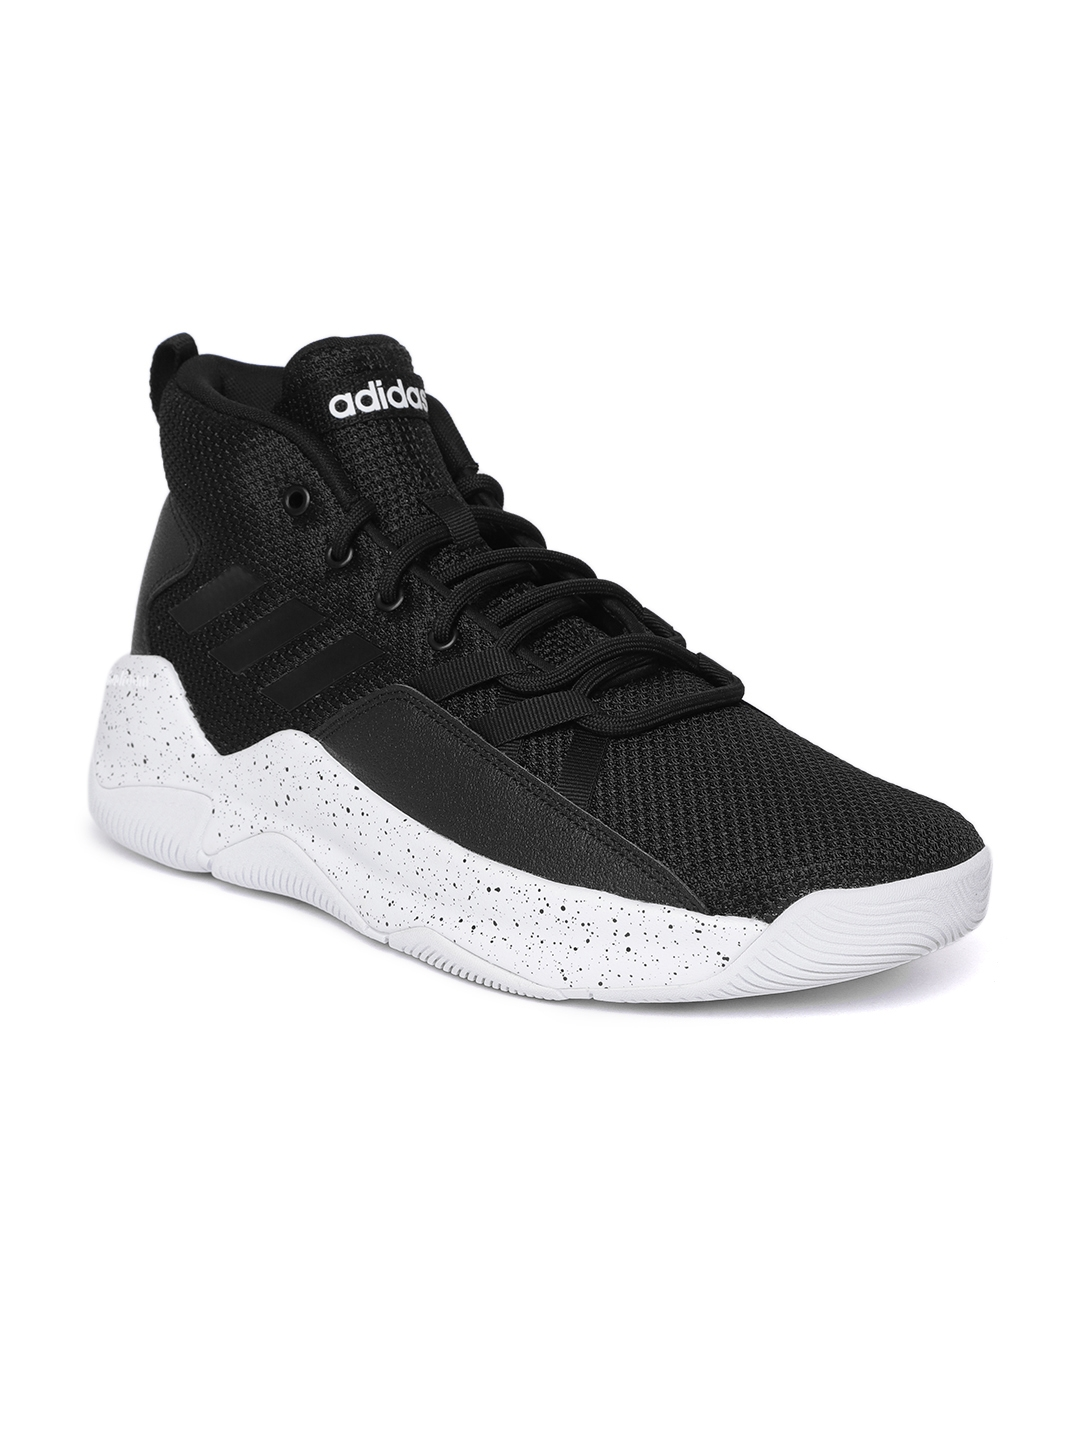 Shoes Black Men Basketball Adidas Sports For Buy Streetfire nB4gXwxzq